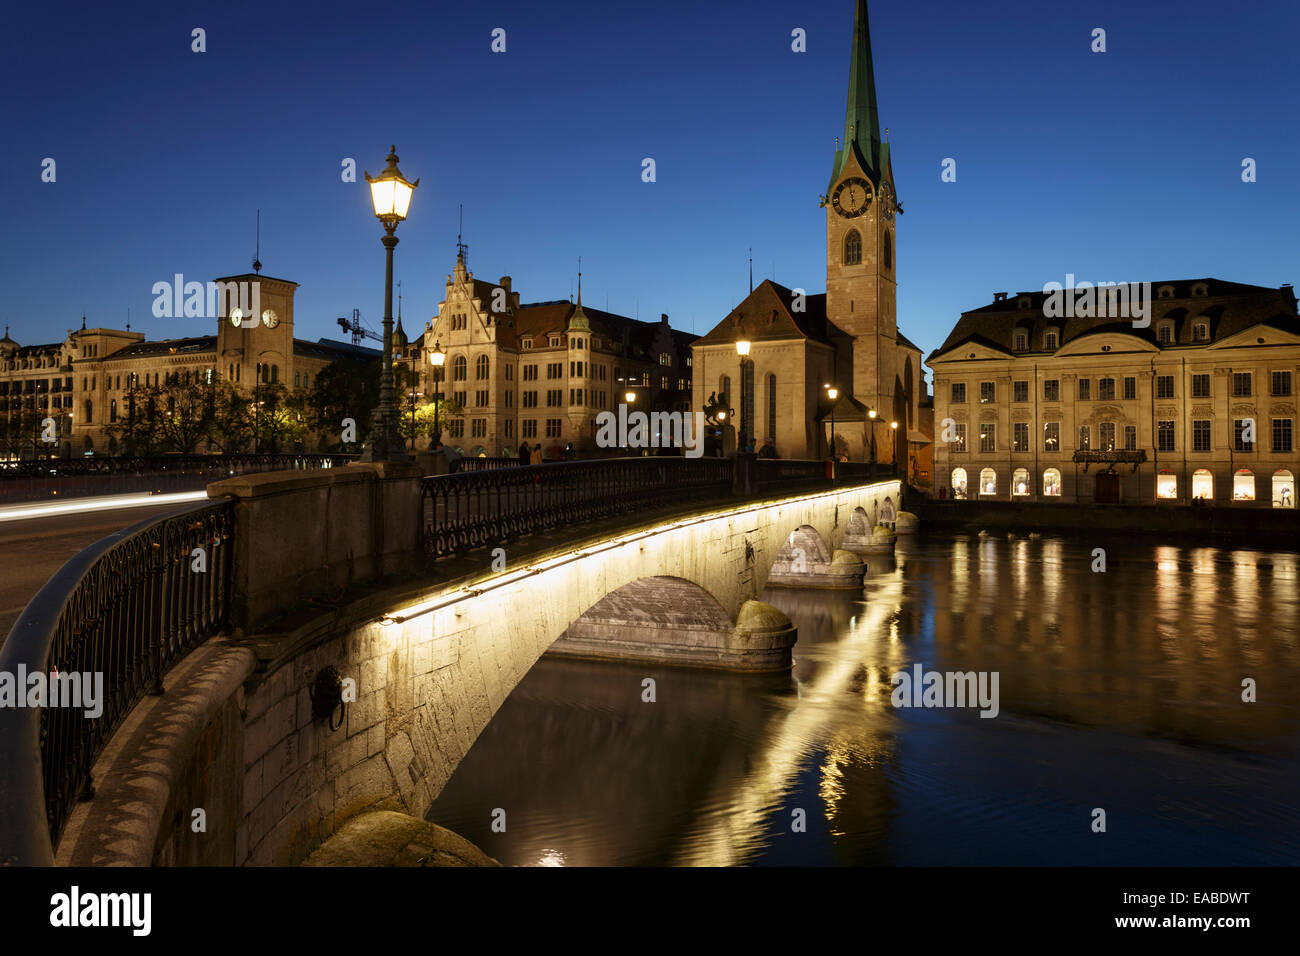 Zurich at night with Fraumunster church, Munsterbrucke and river Limmat, Switzerland - Stock Image